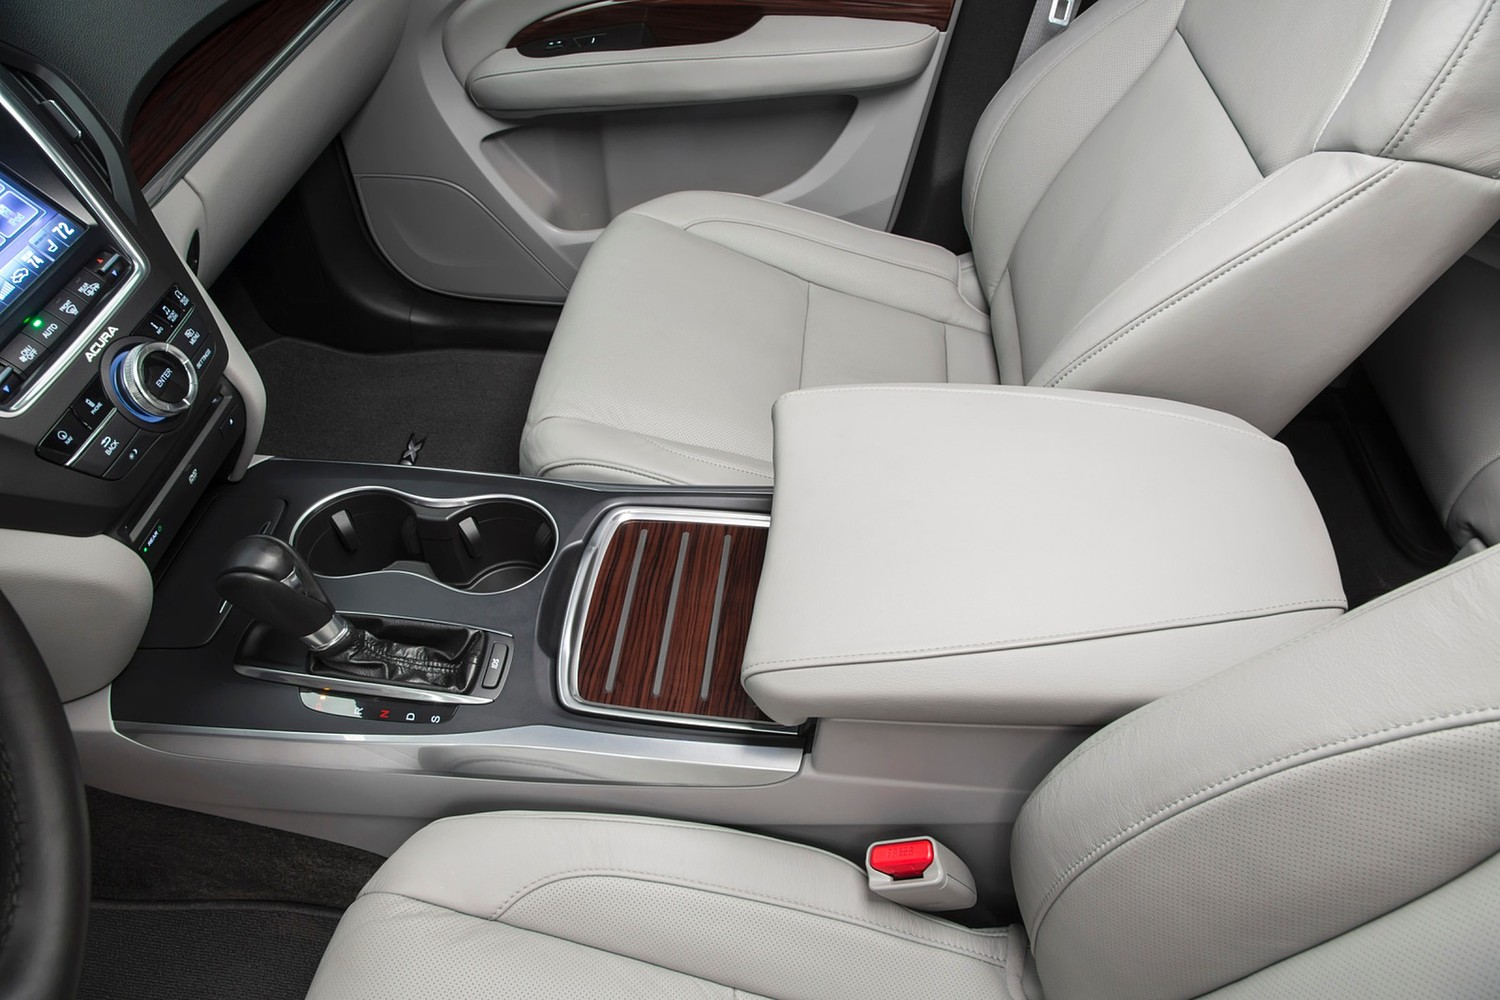 Acura MDX SH-AWD w/Technology and Entertainment Packages 4dr SUV Center Console (2014 model year shown)